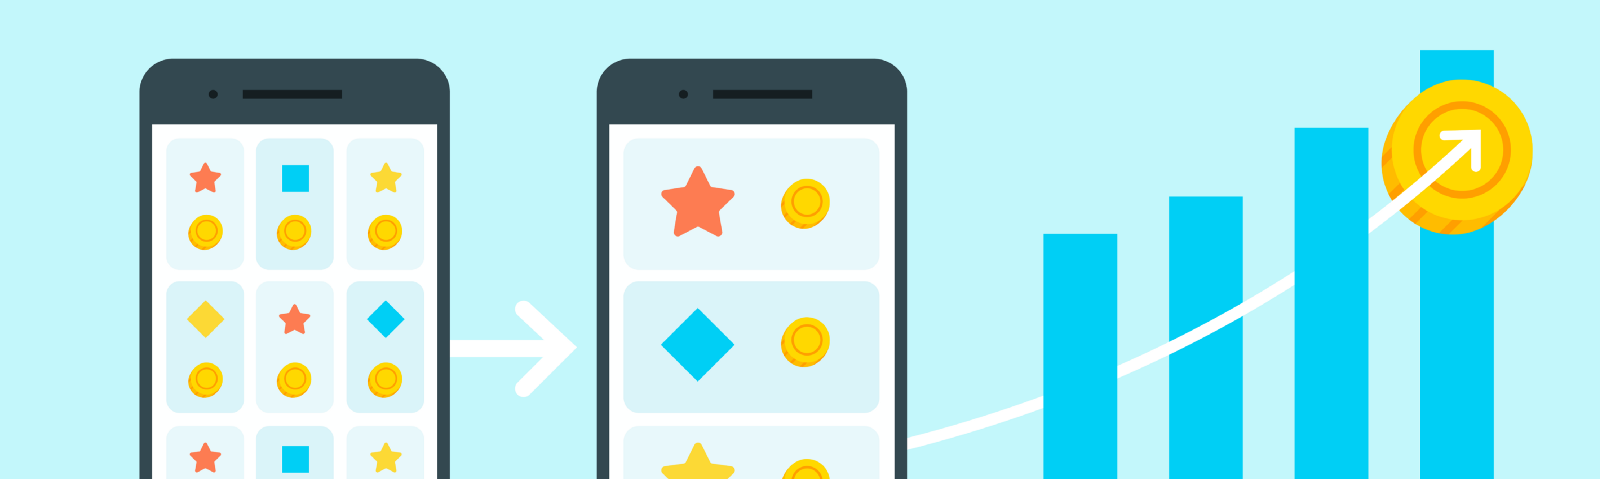 UX tips to optimize in-app purchases in games header